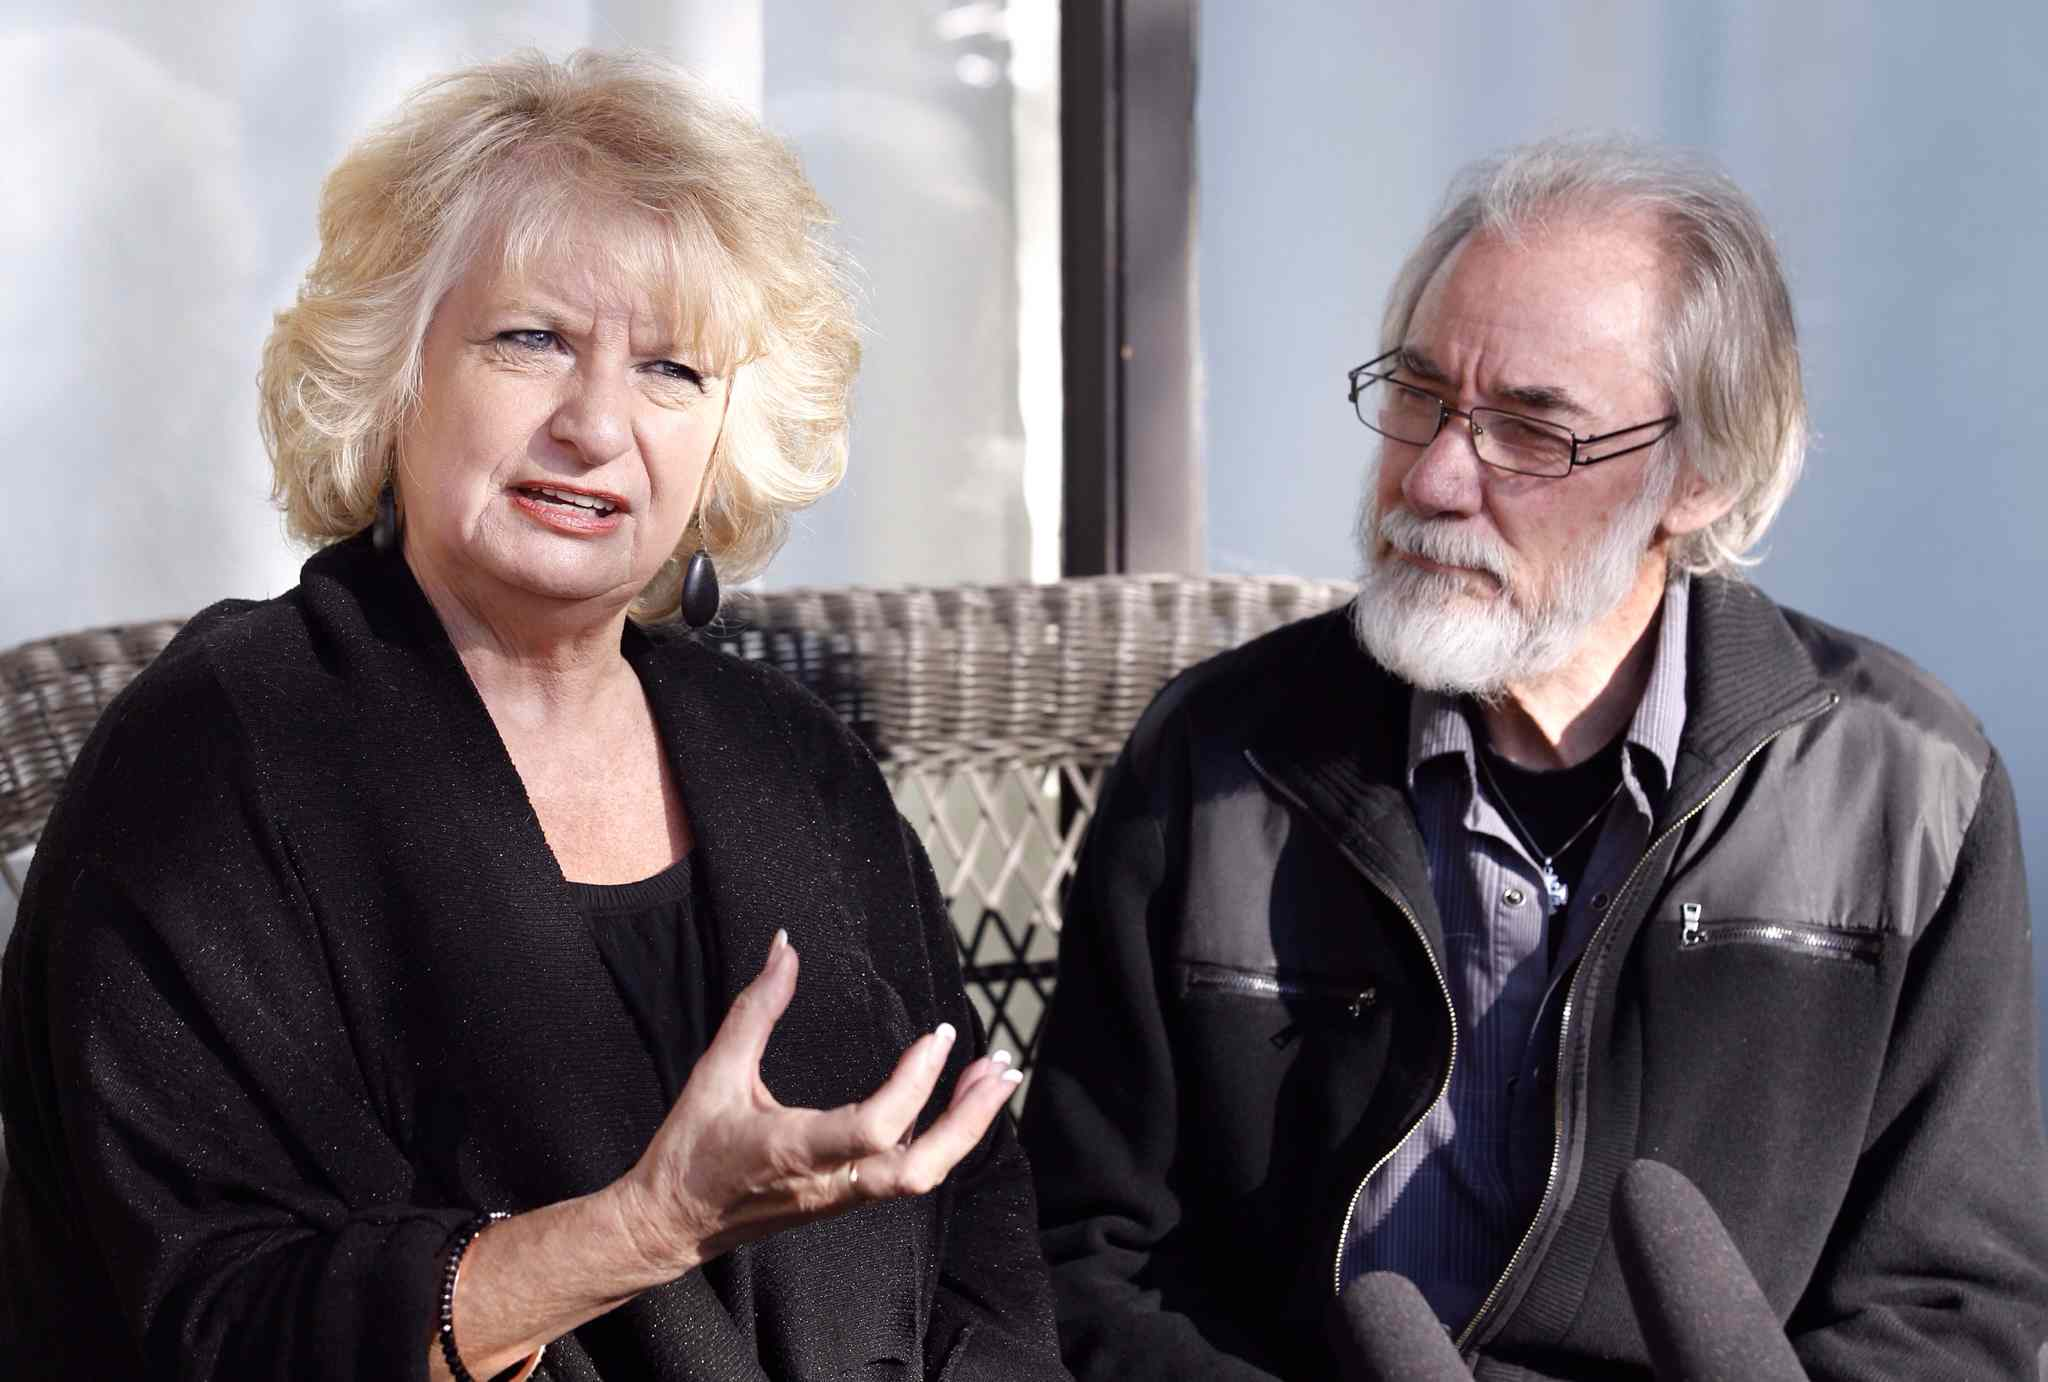 Wilma and Cliff Derksen say they didn't expect the possibility of a retrial and are trying to come to terms with the Court of Appeal's decision.